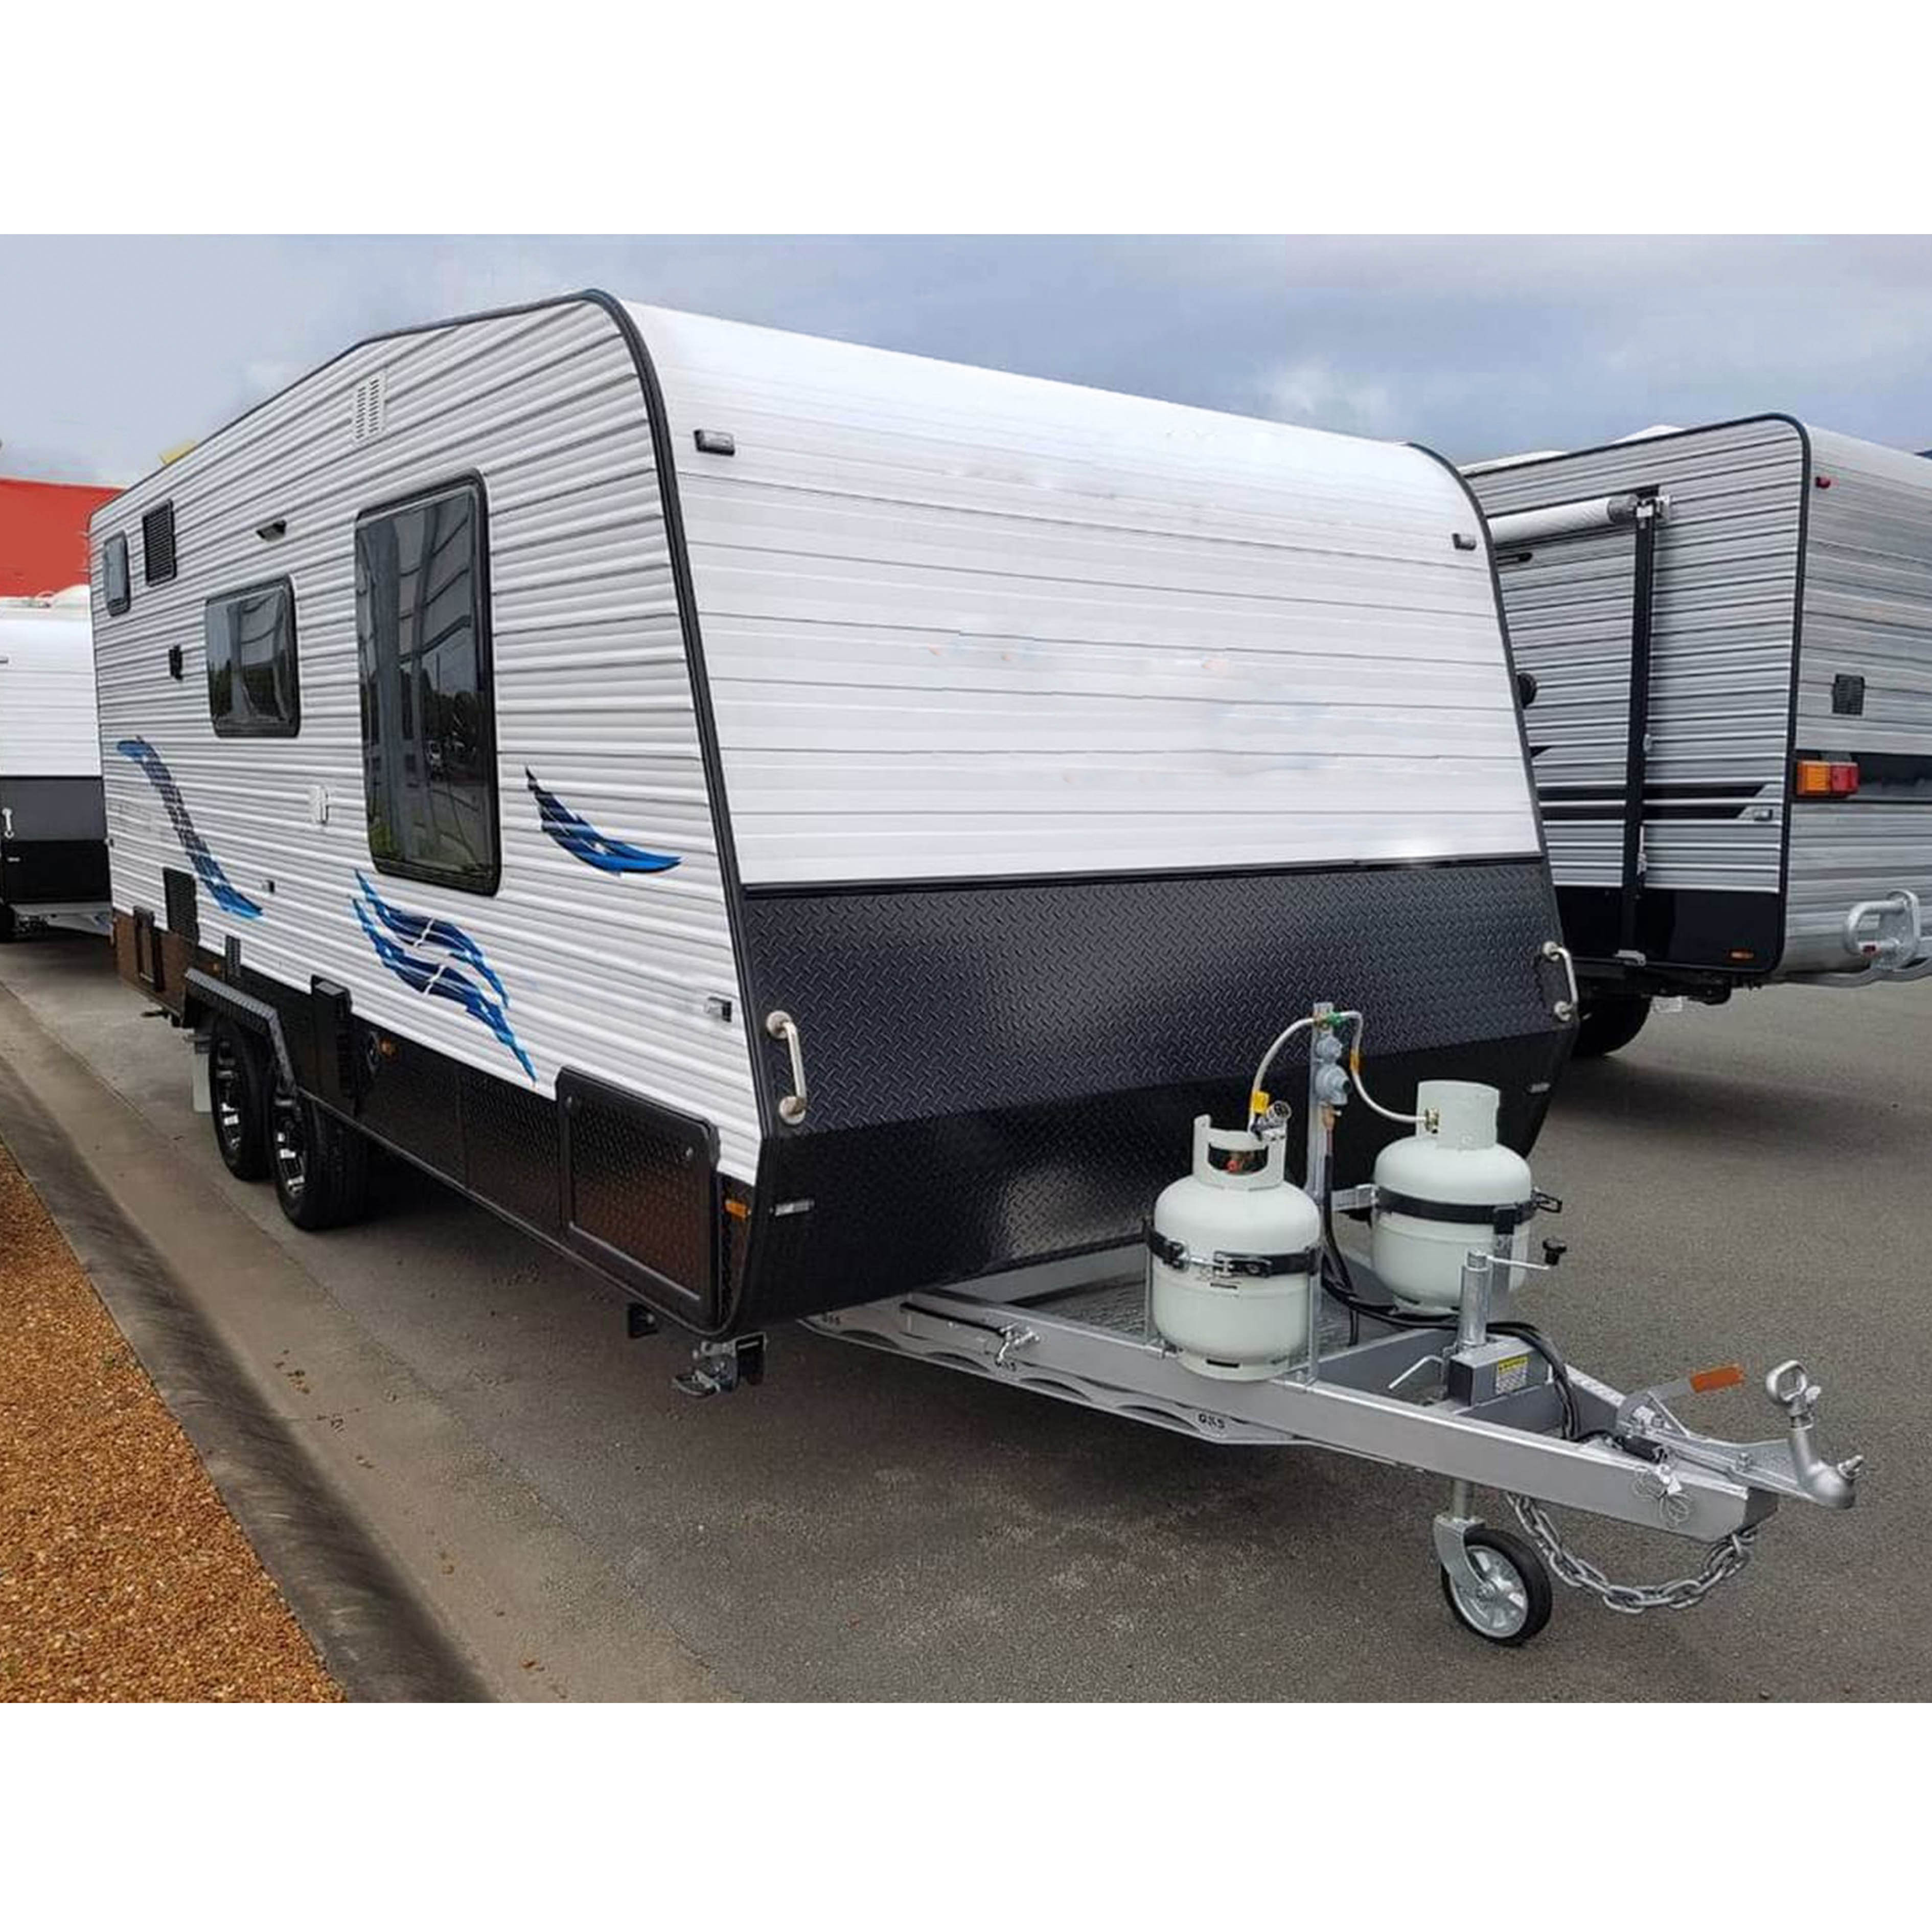 China motorhomes sale wholesale 🇨🇳 - Alibaba